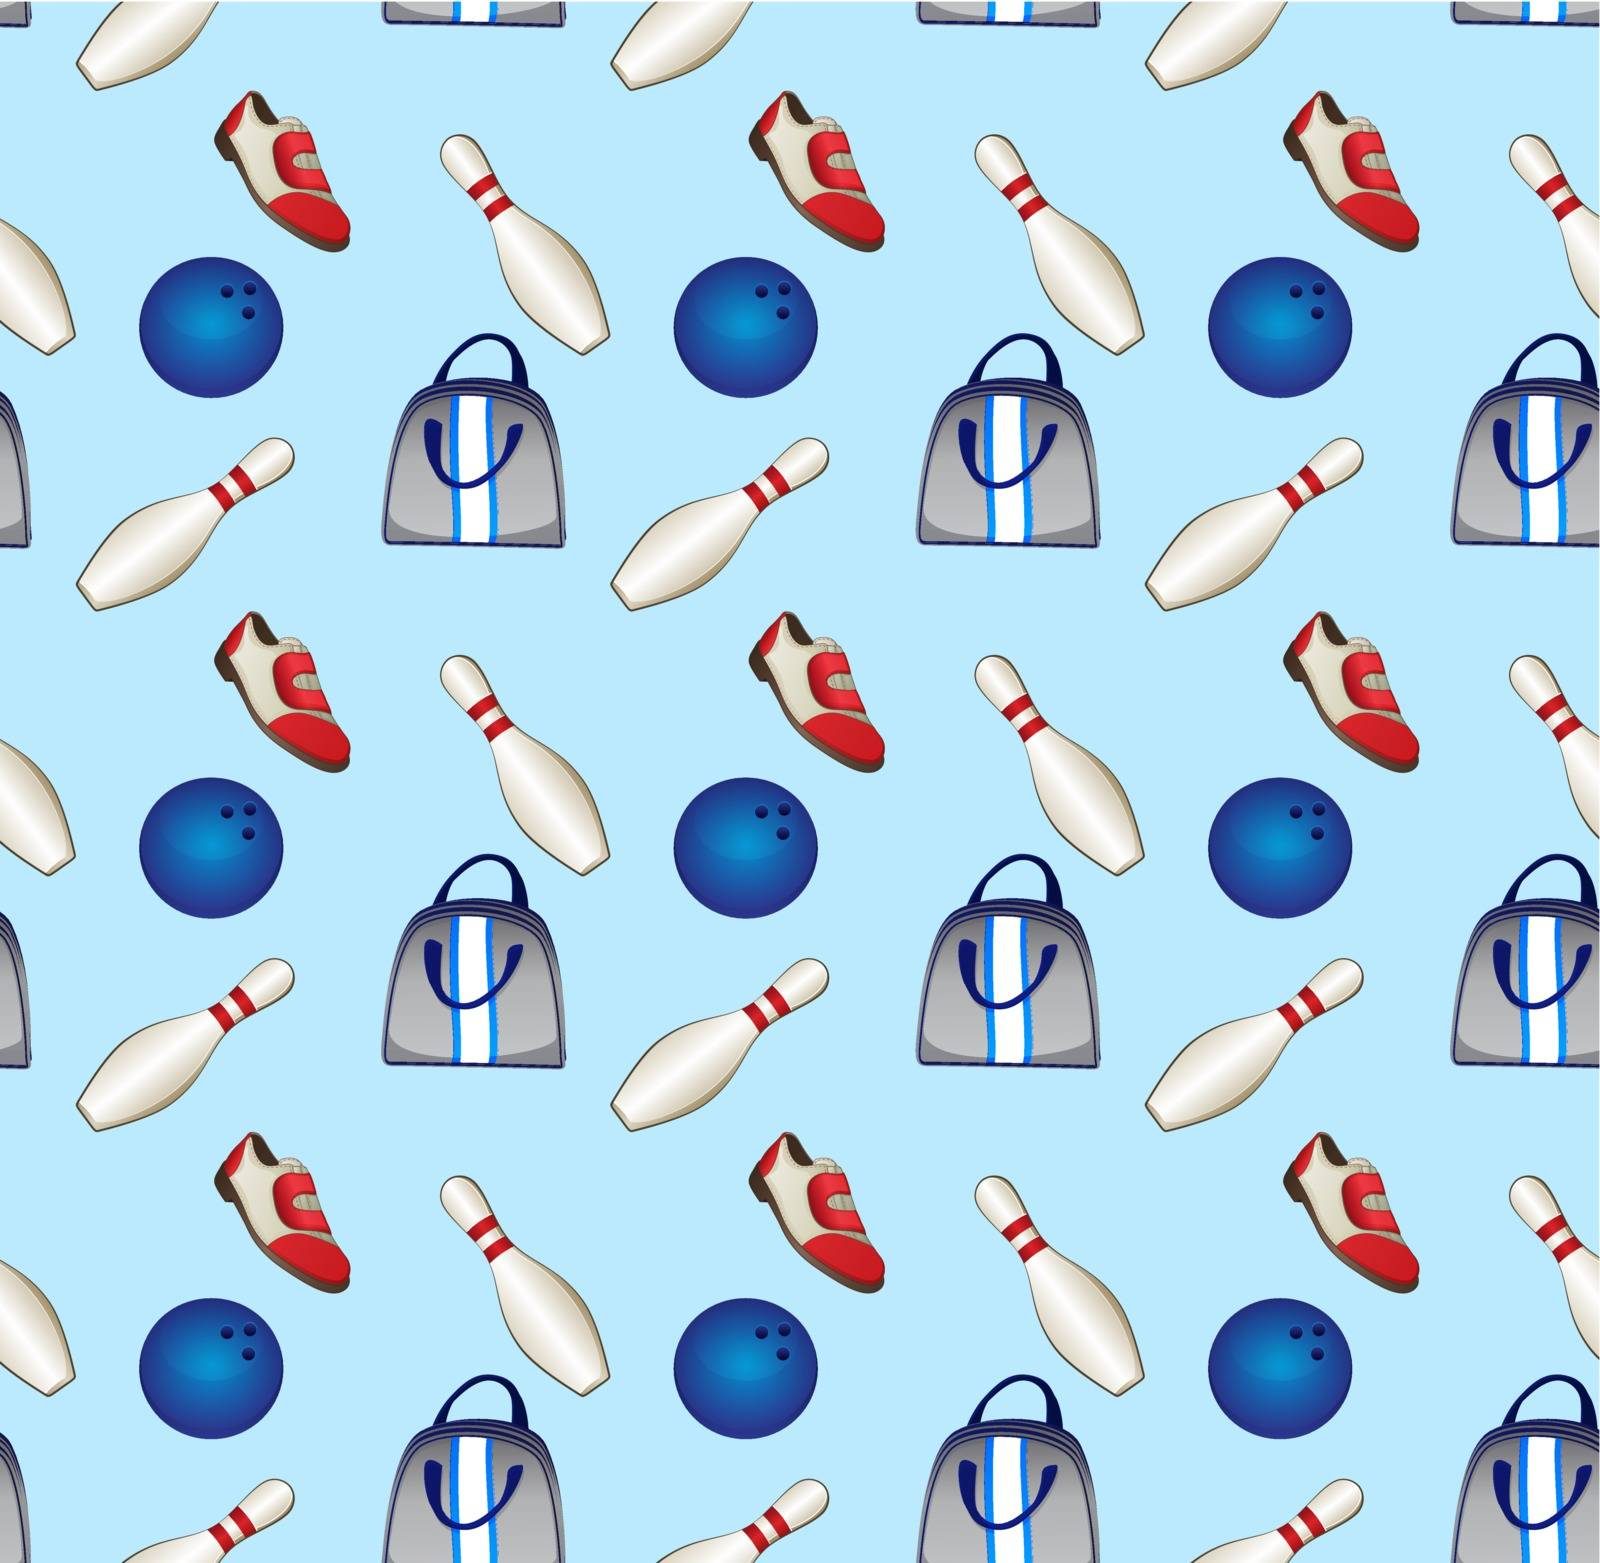 Bowling Equipment Icons Pattern